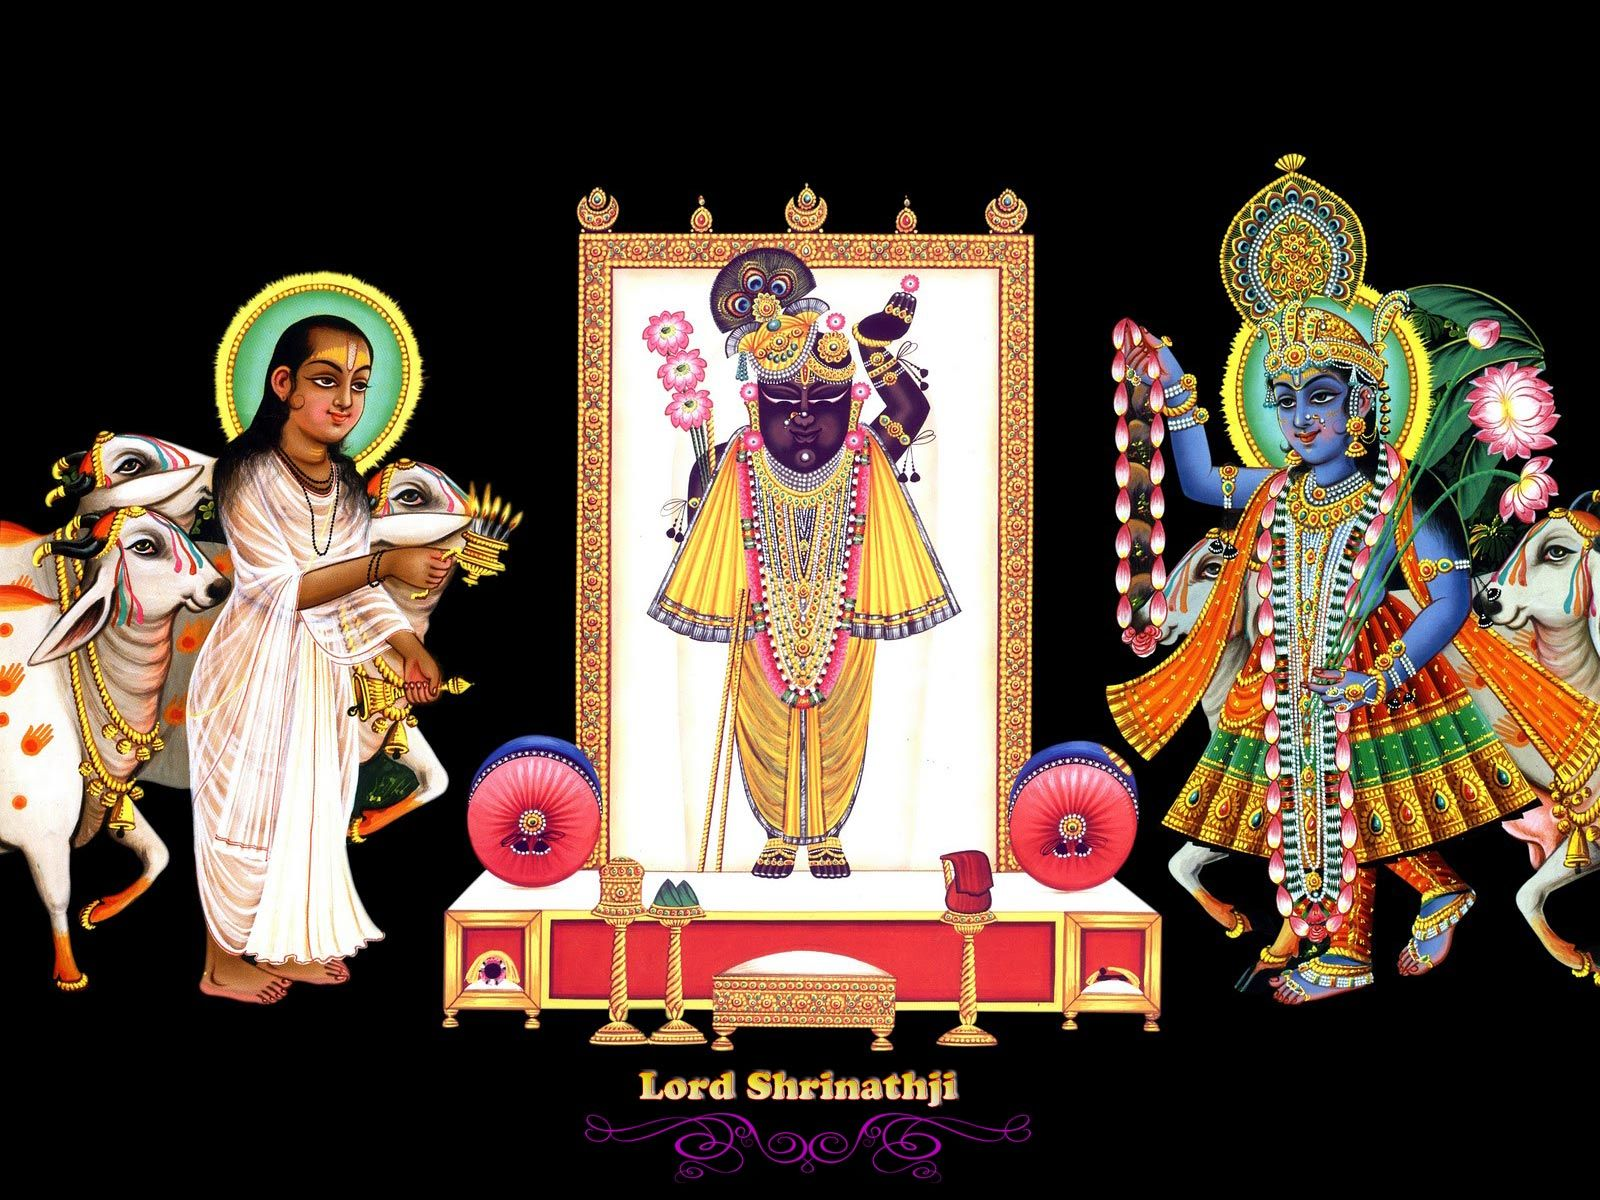 shrinathji hd mobile